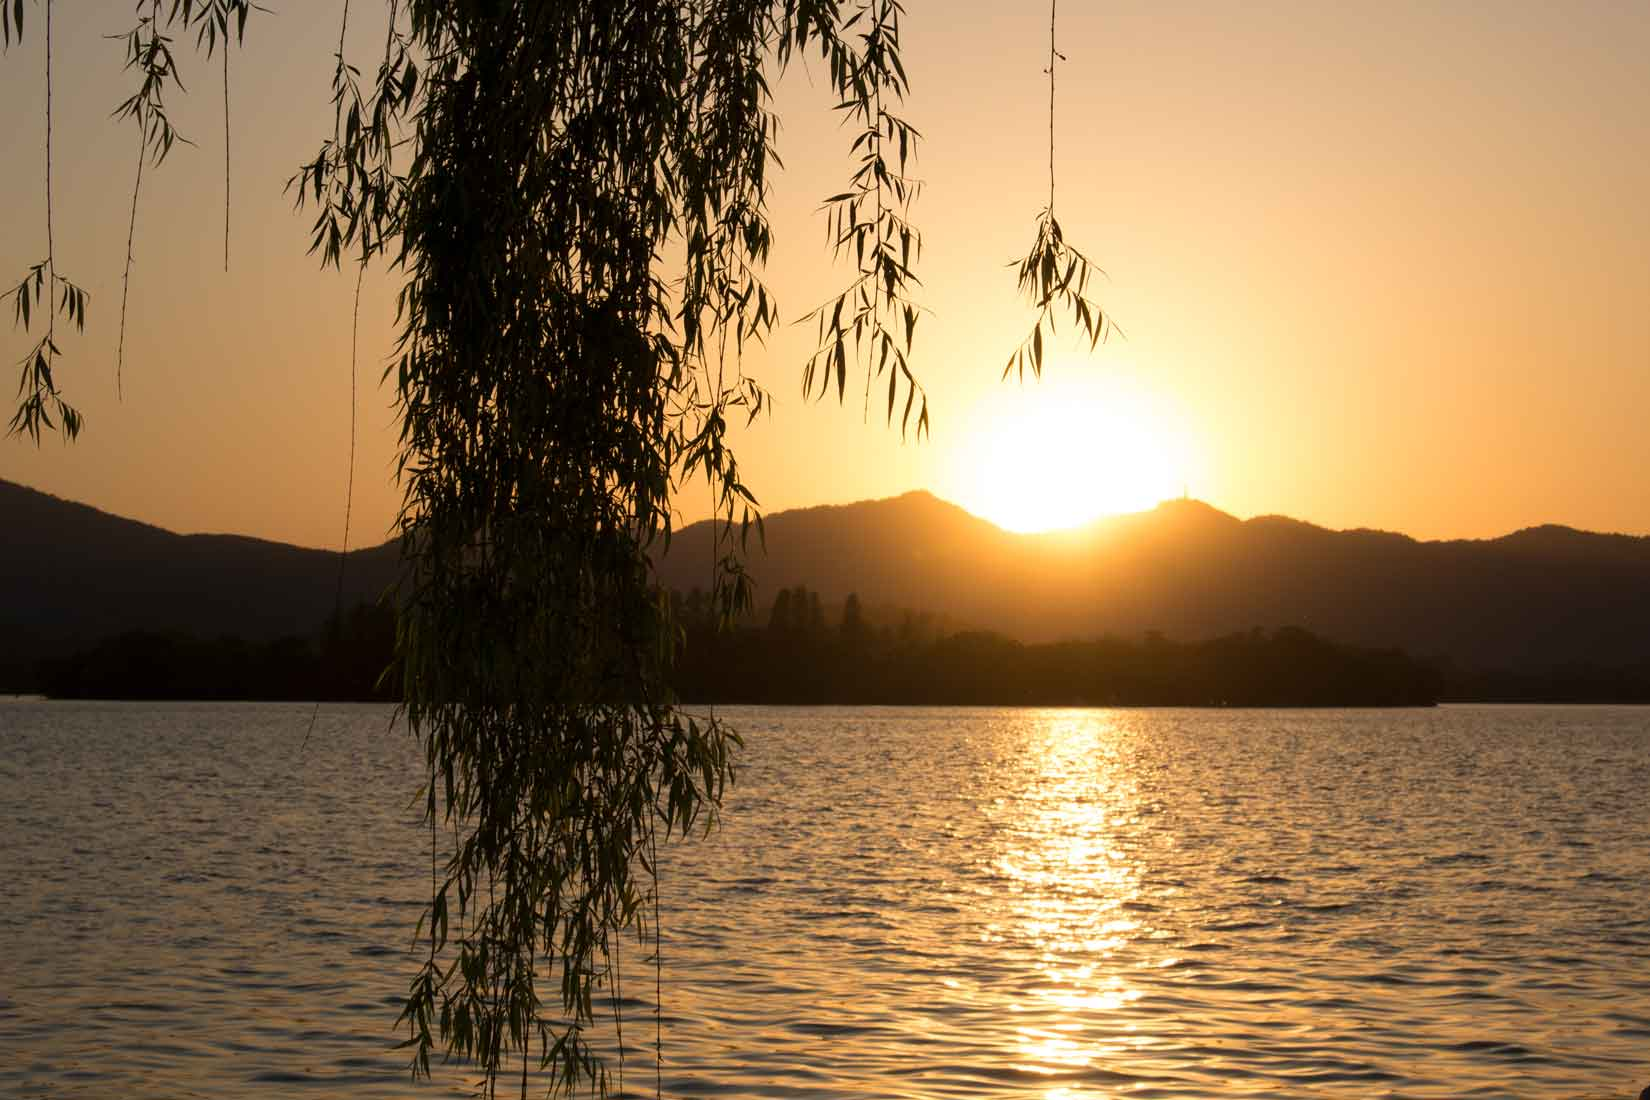 Sunset at the West Lake Zhejiang China